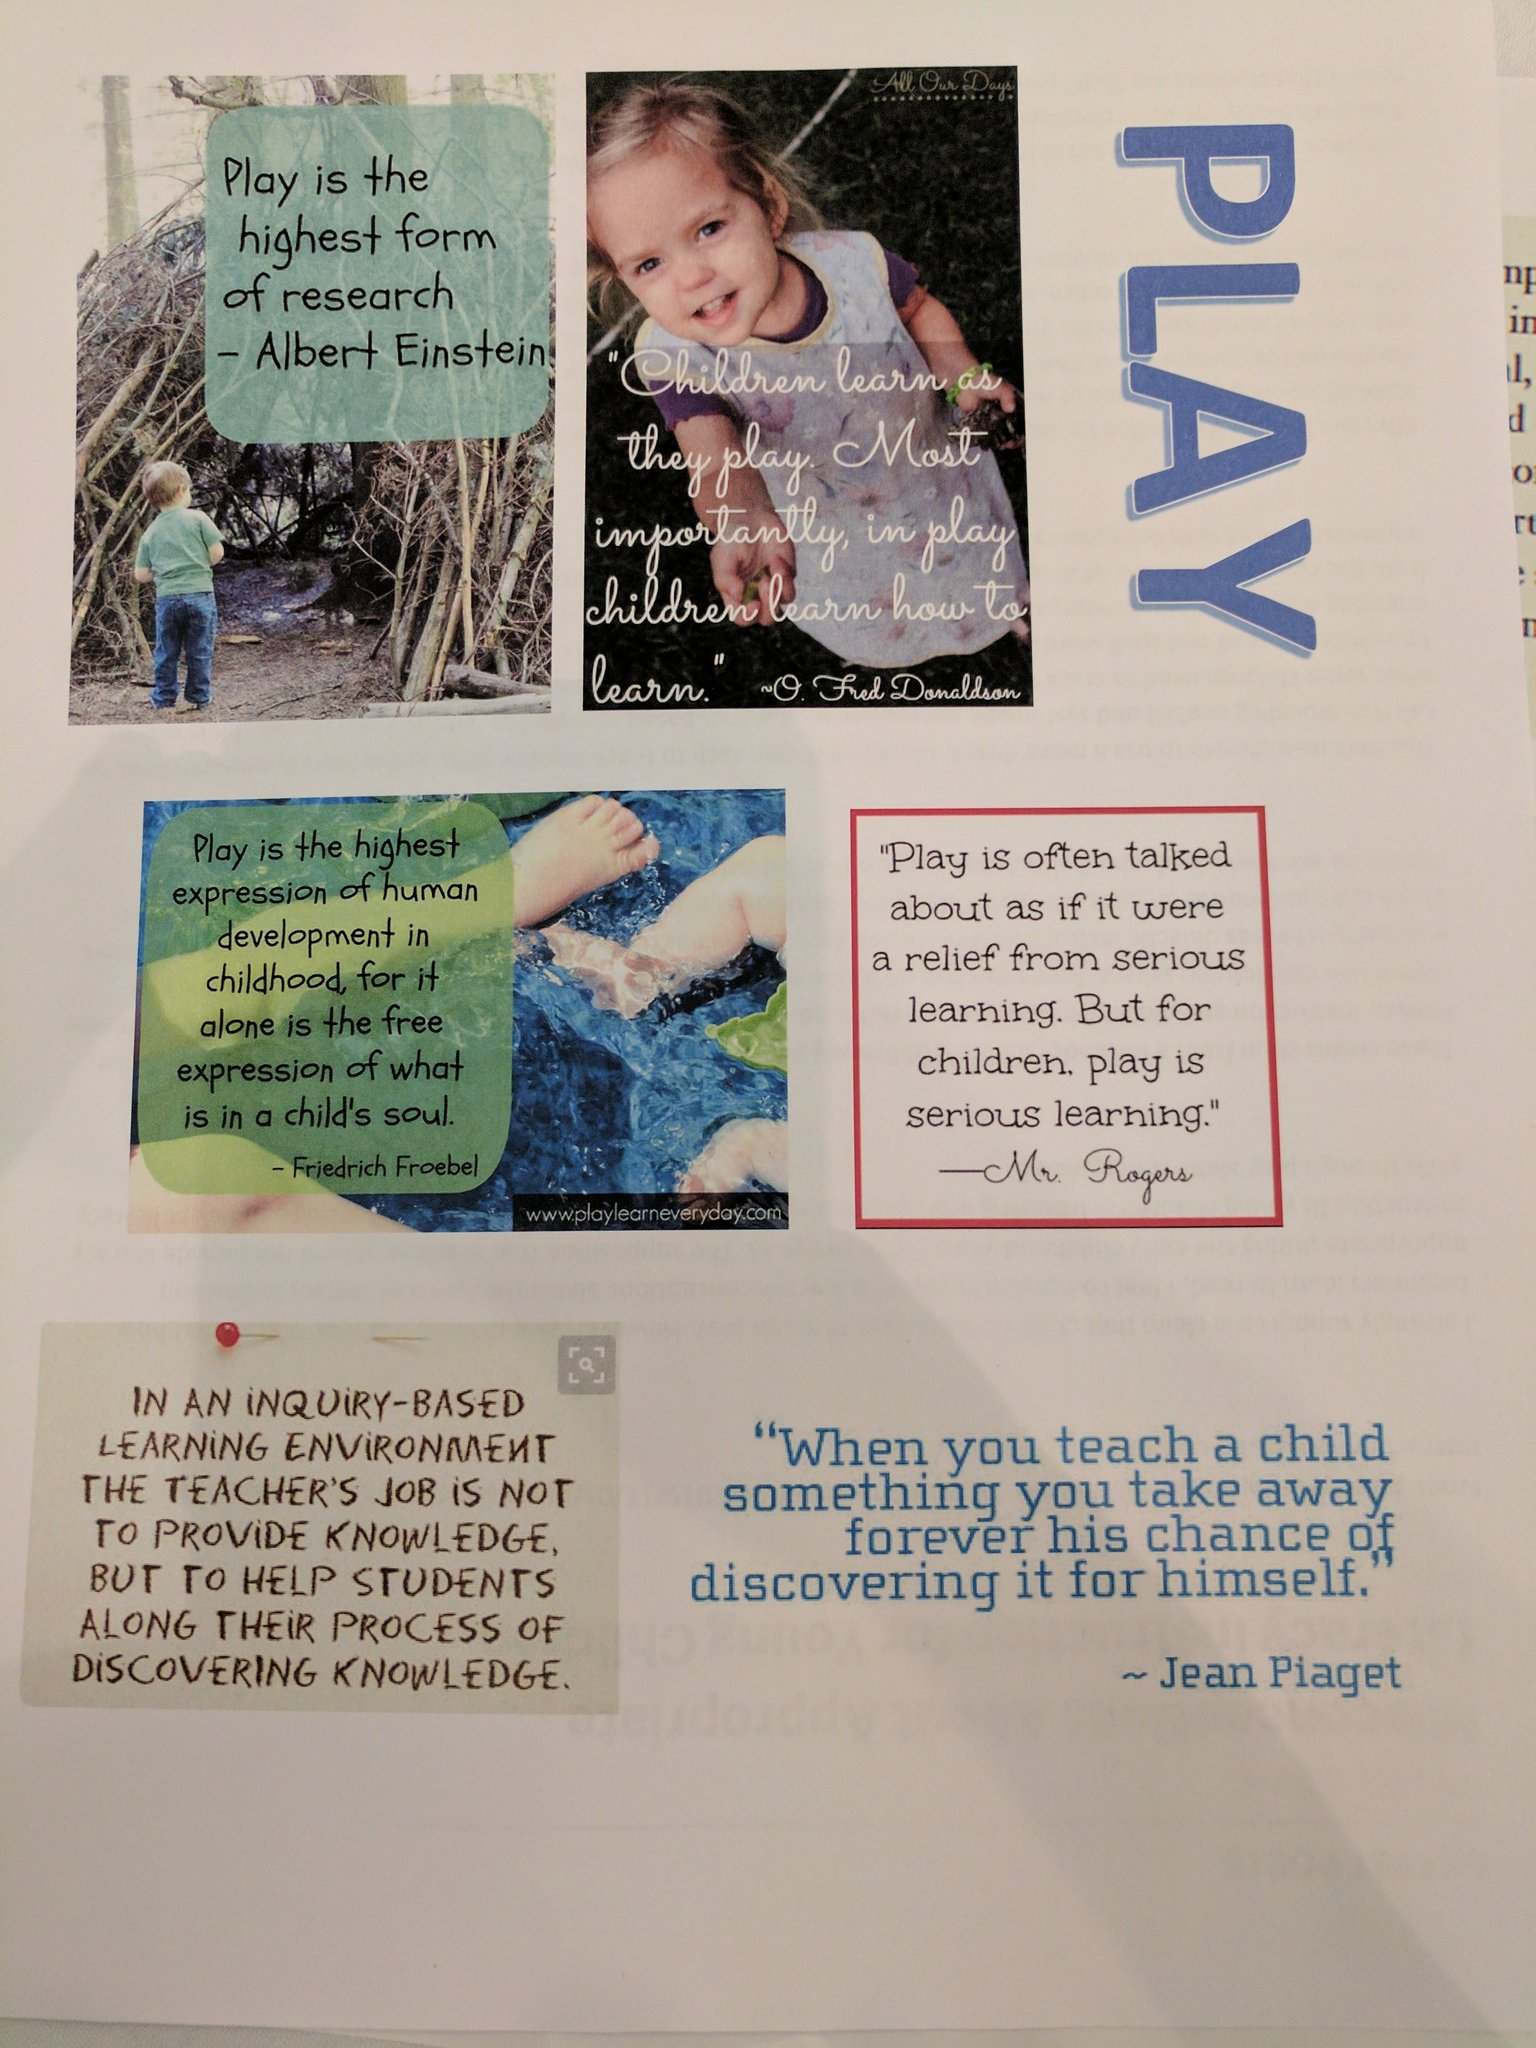 Quotes about the value of Inquiry and Play-Based learning #etfopley https://t.co/8Bklo2EfAj